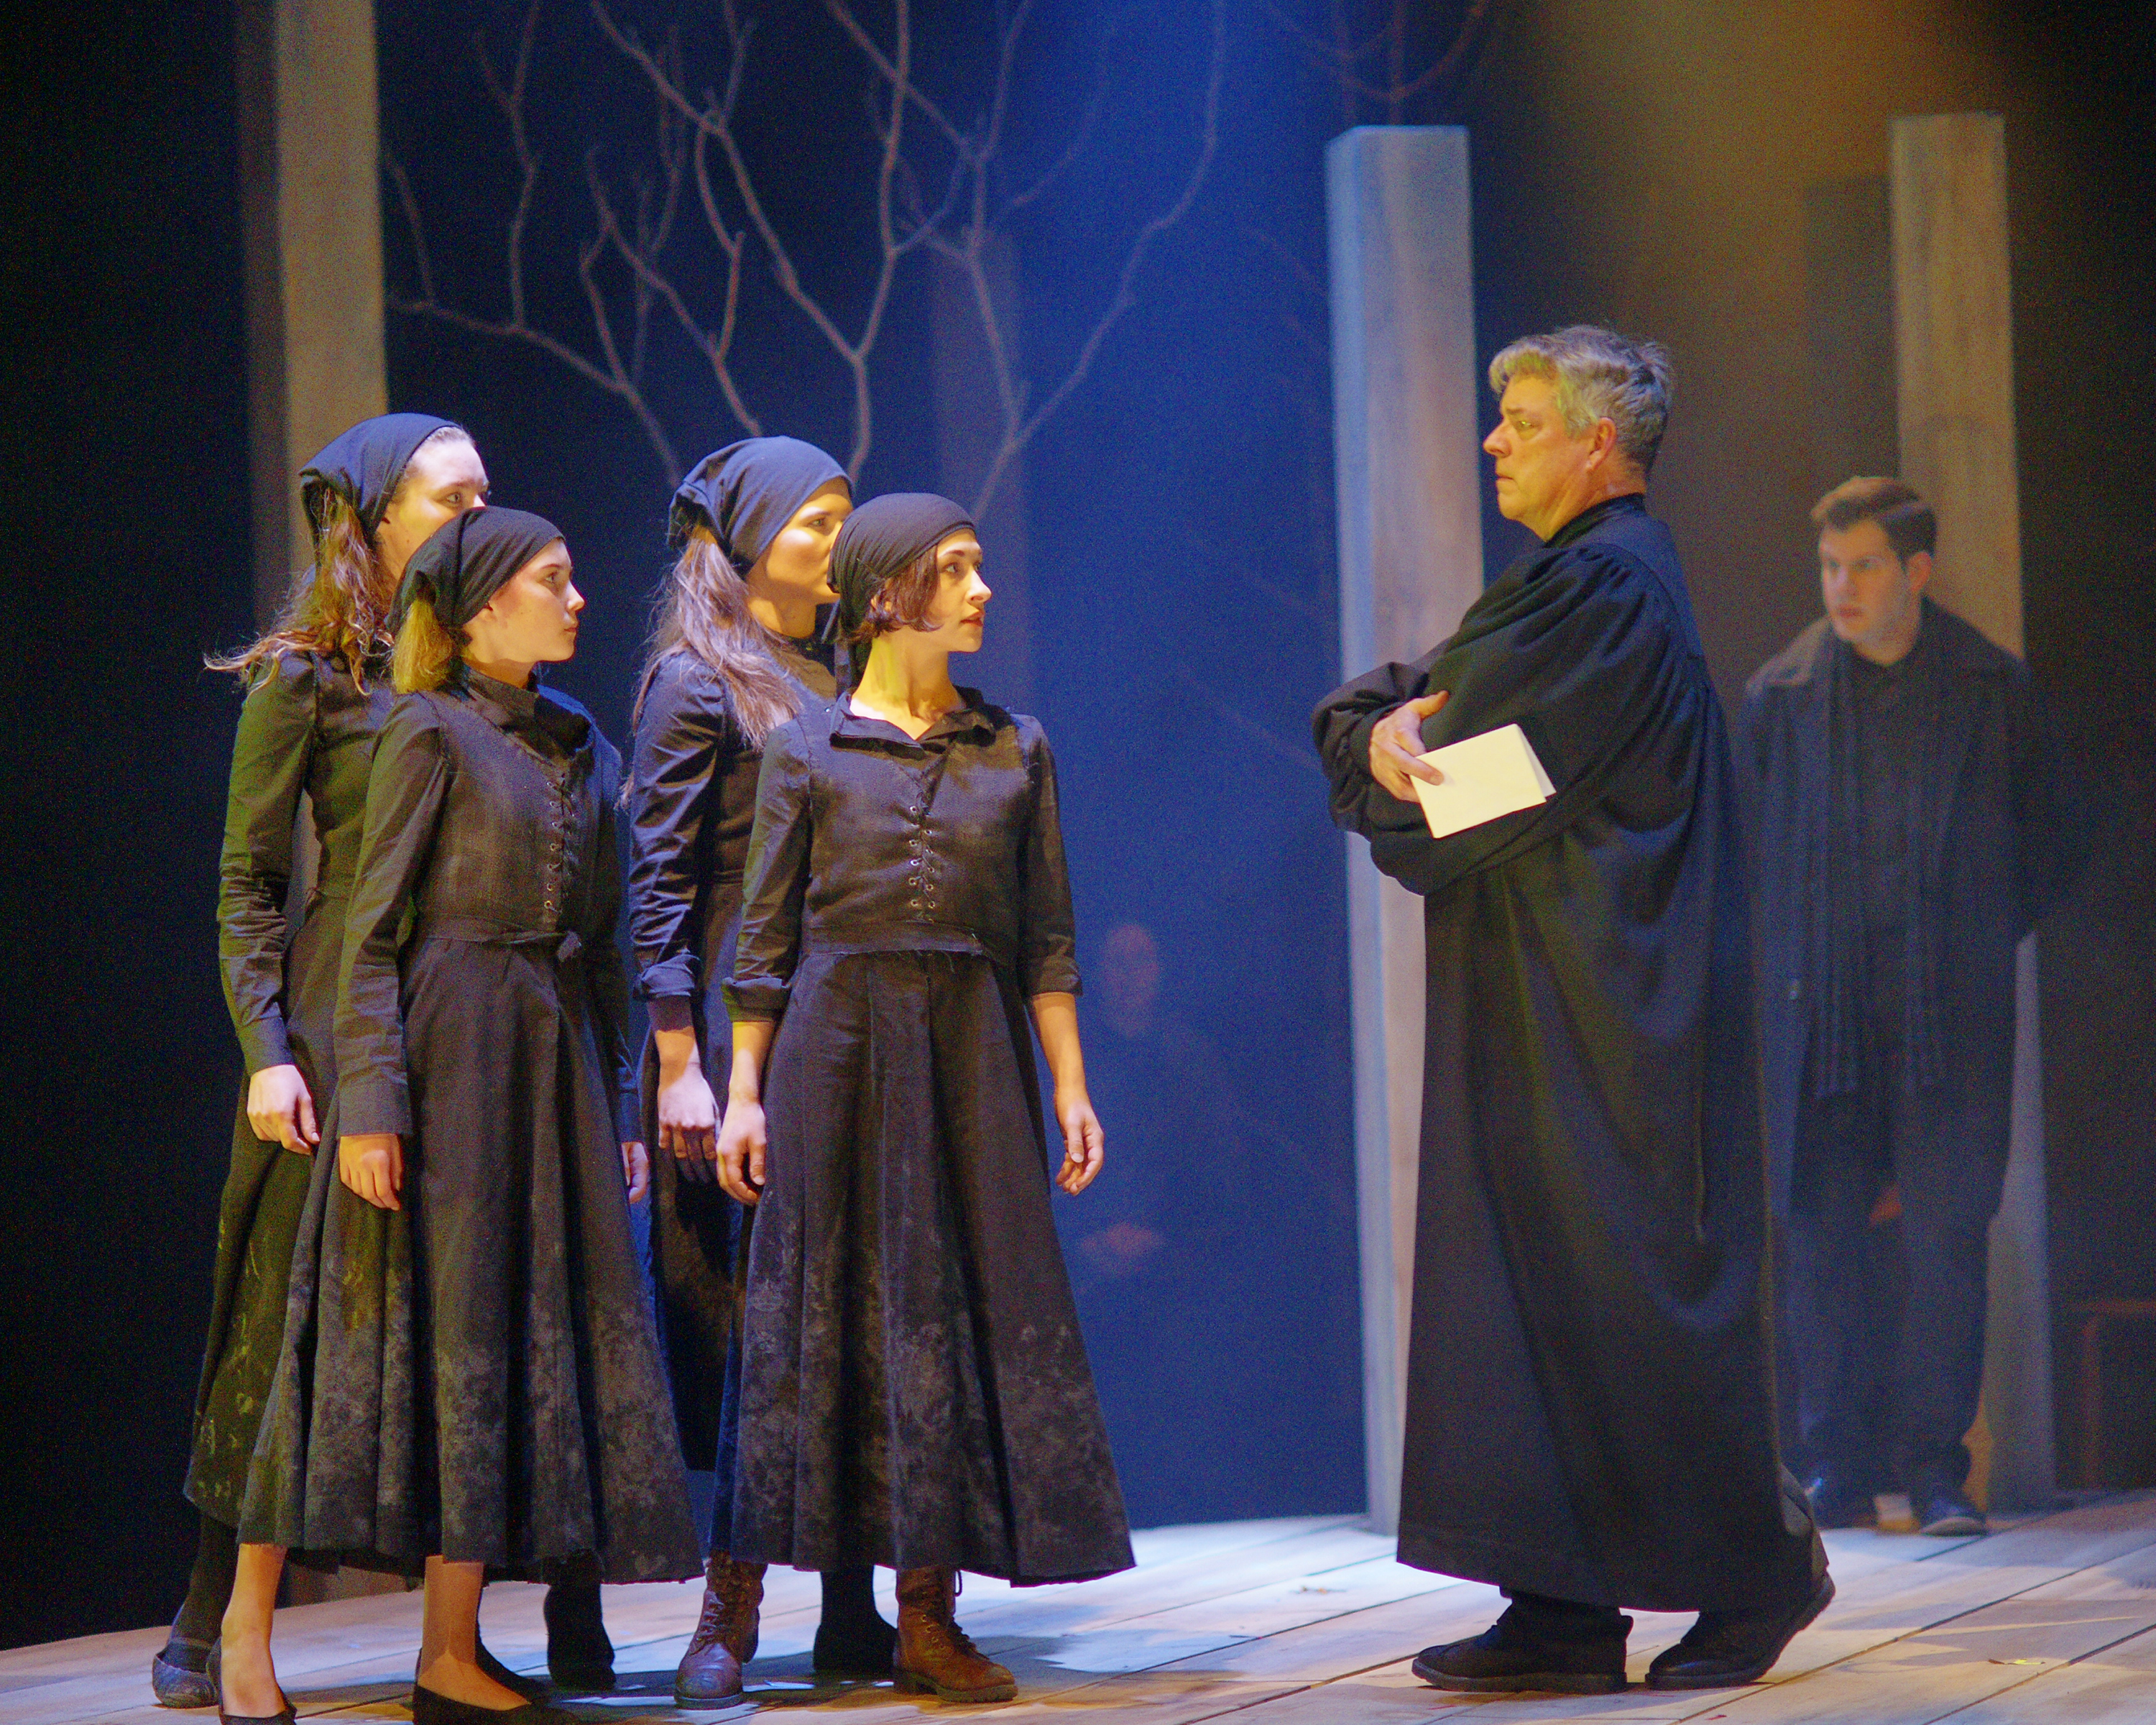 Front: Abigail Craven as Betty Parris, Courtney Lamanna as Abigail Williams, David John Phillips as Danforth | Back: Joanna Decc as Mercy Lewis, Charlin McIsaac as Suzanna Walcott, Anthony Botelho as Reverend Parris